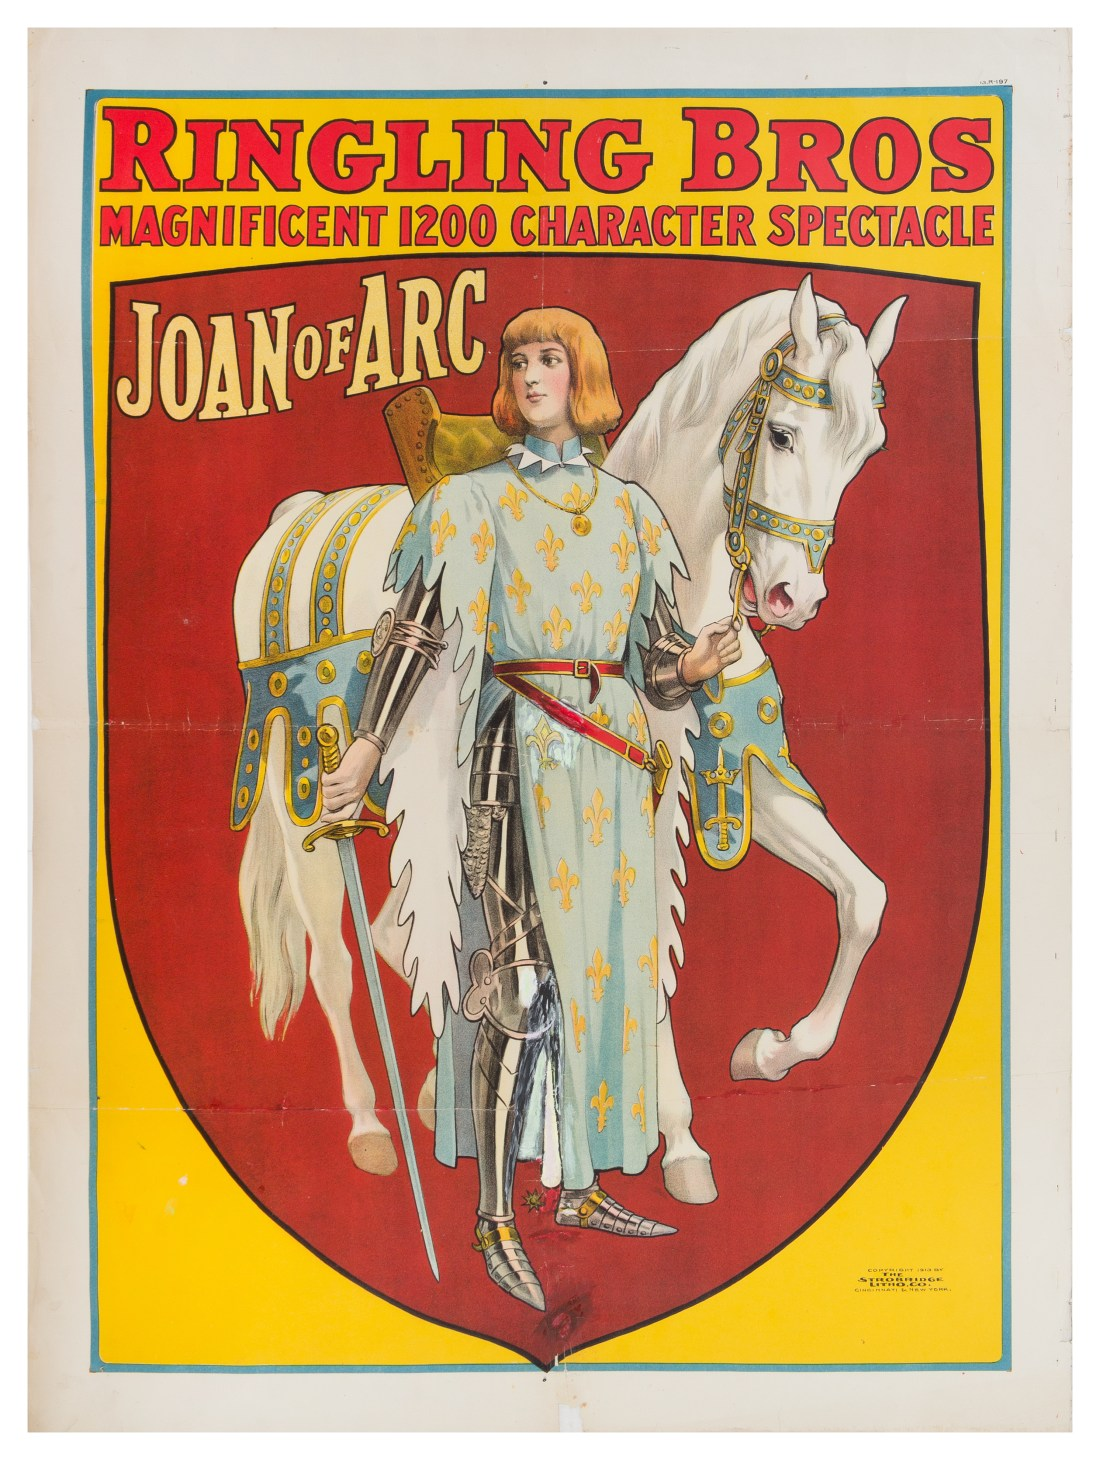 A 1913 poster by Ringling Brothers, featuring Joan of Arc and promising a 'Magnificent 1200 Character Spectacle.' It's from the Richard Bennett Collection of Circus Memorabilia.